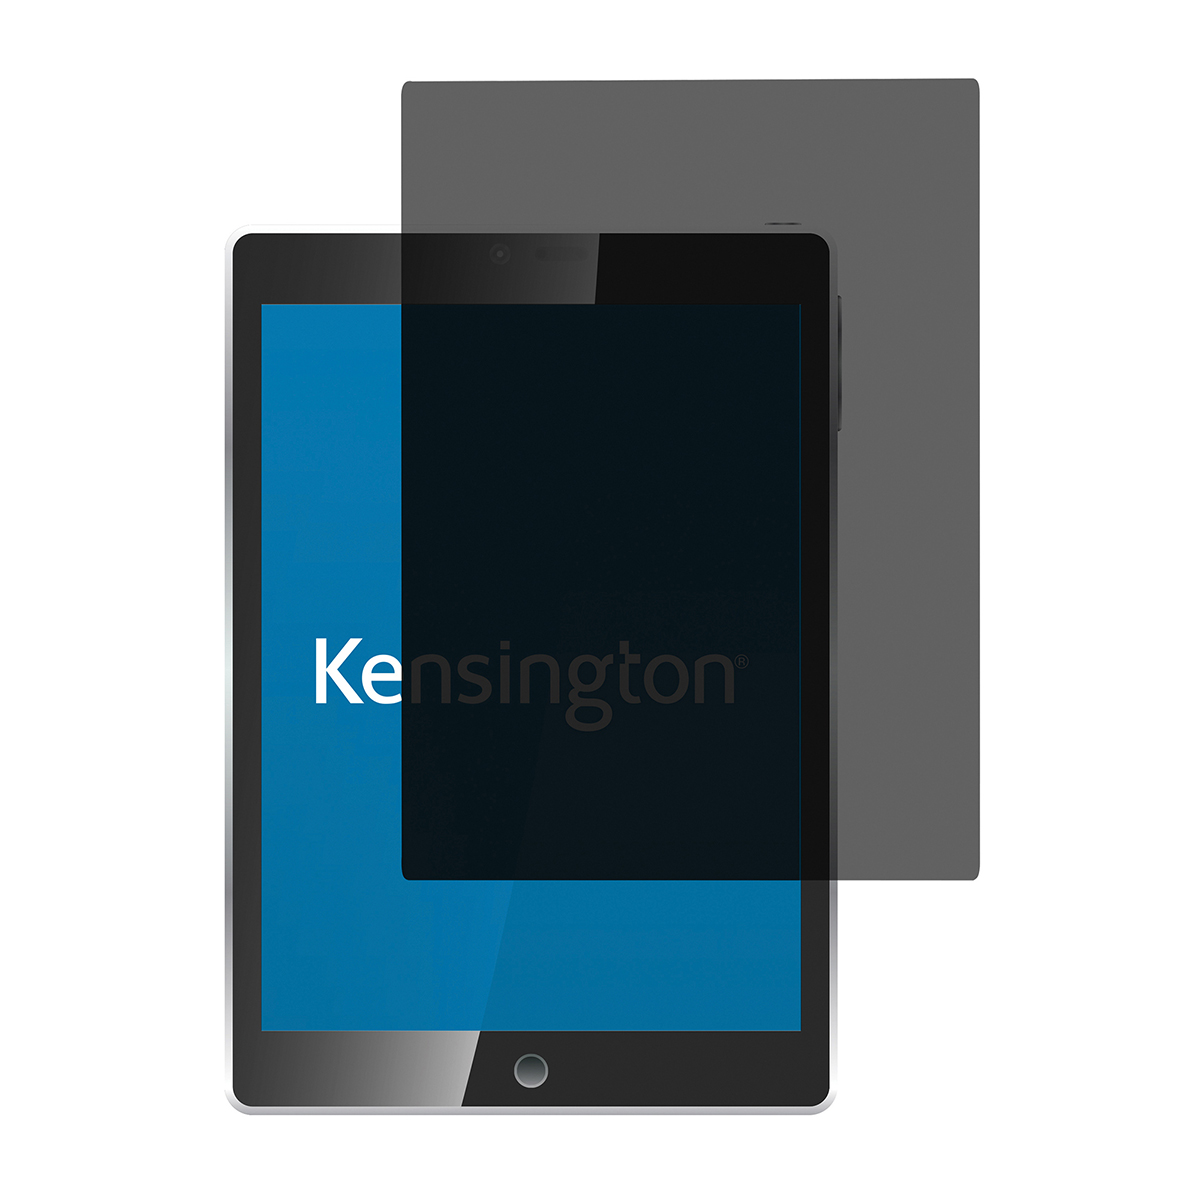 Kensington 626400 Privacy Filter 2 Way Adhesive for iPad Pro 10.5 Inch Landscape